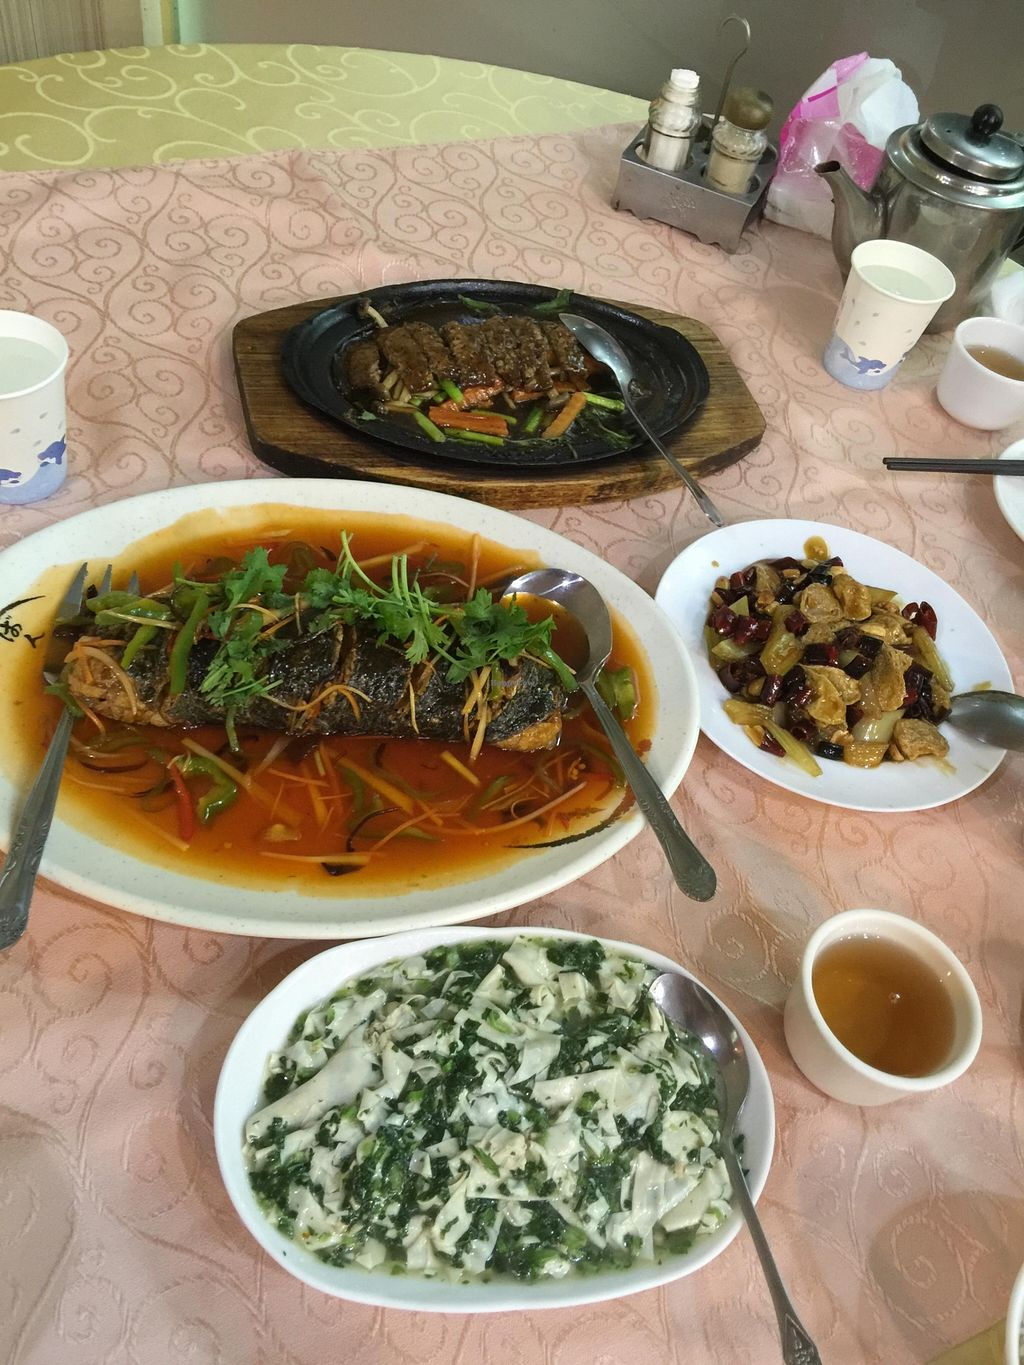 "Photo of Yi Yuan Vegetarian  by <a href=""/members/profile/Dantes"">Dantes</a> <br/>Some of the dishes <br/> May 9, 2016  - <a href='/contact/abuse/image/73327/148190'>Report</a>"